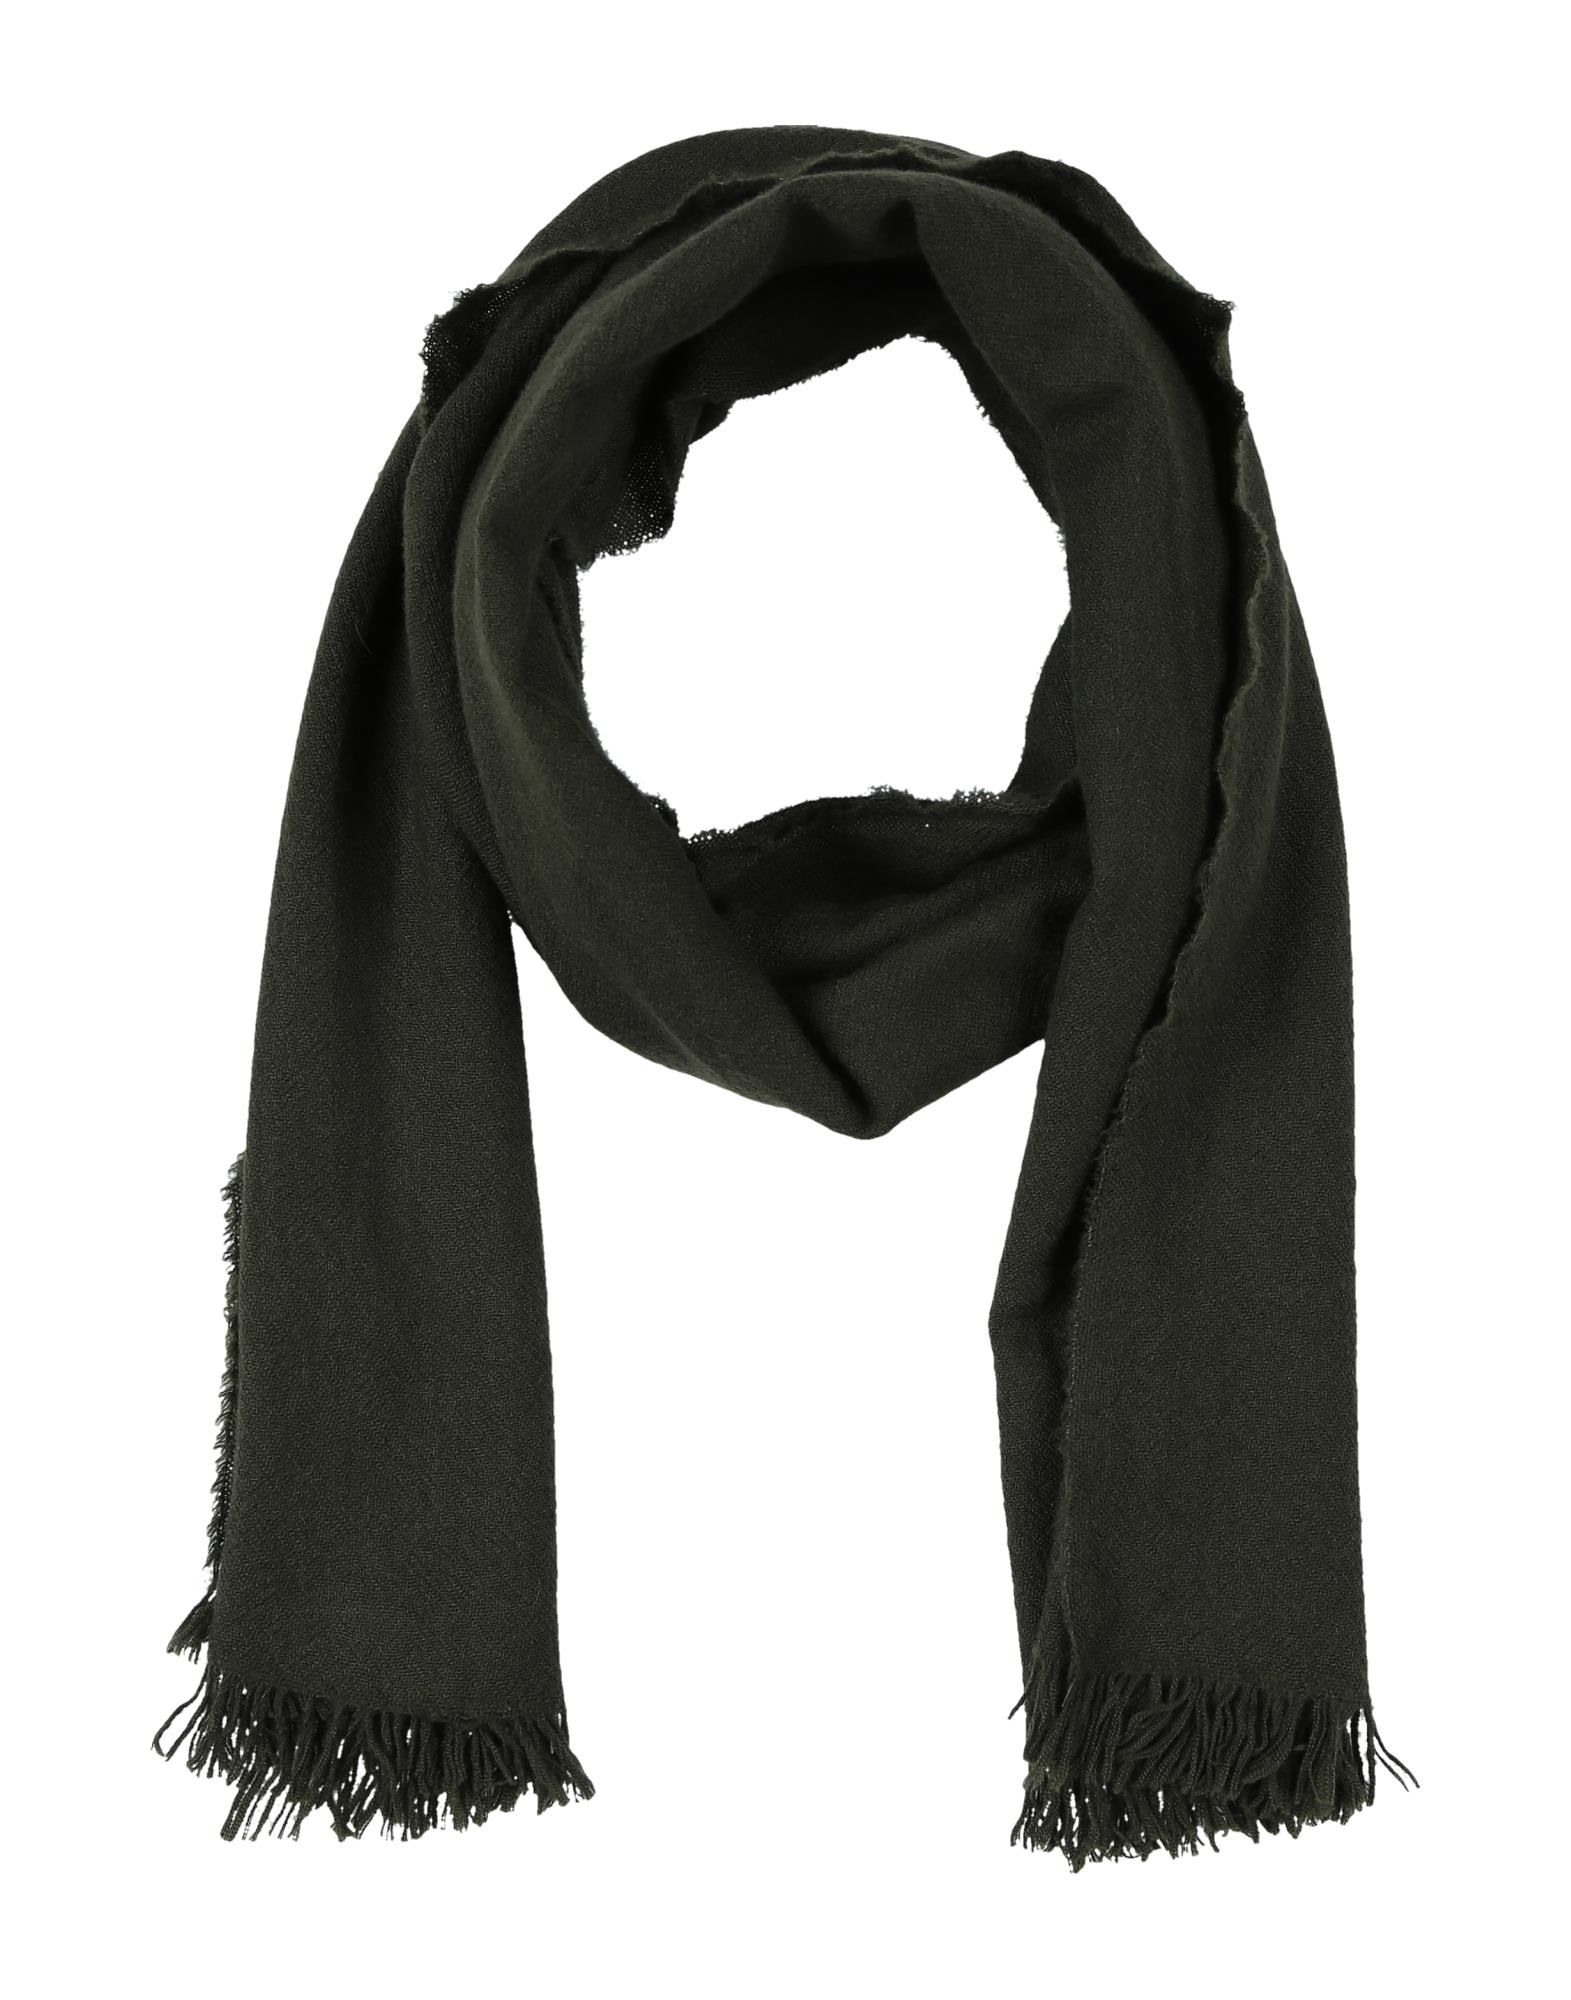 Begg & Co Accessories OBLONG SCARVES